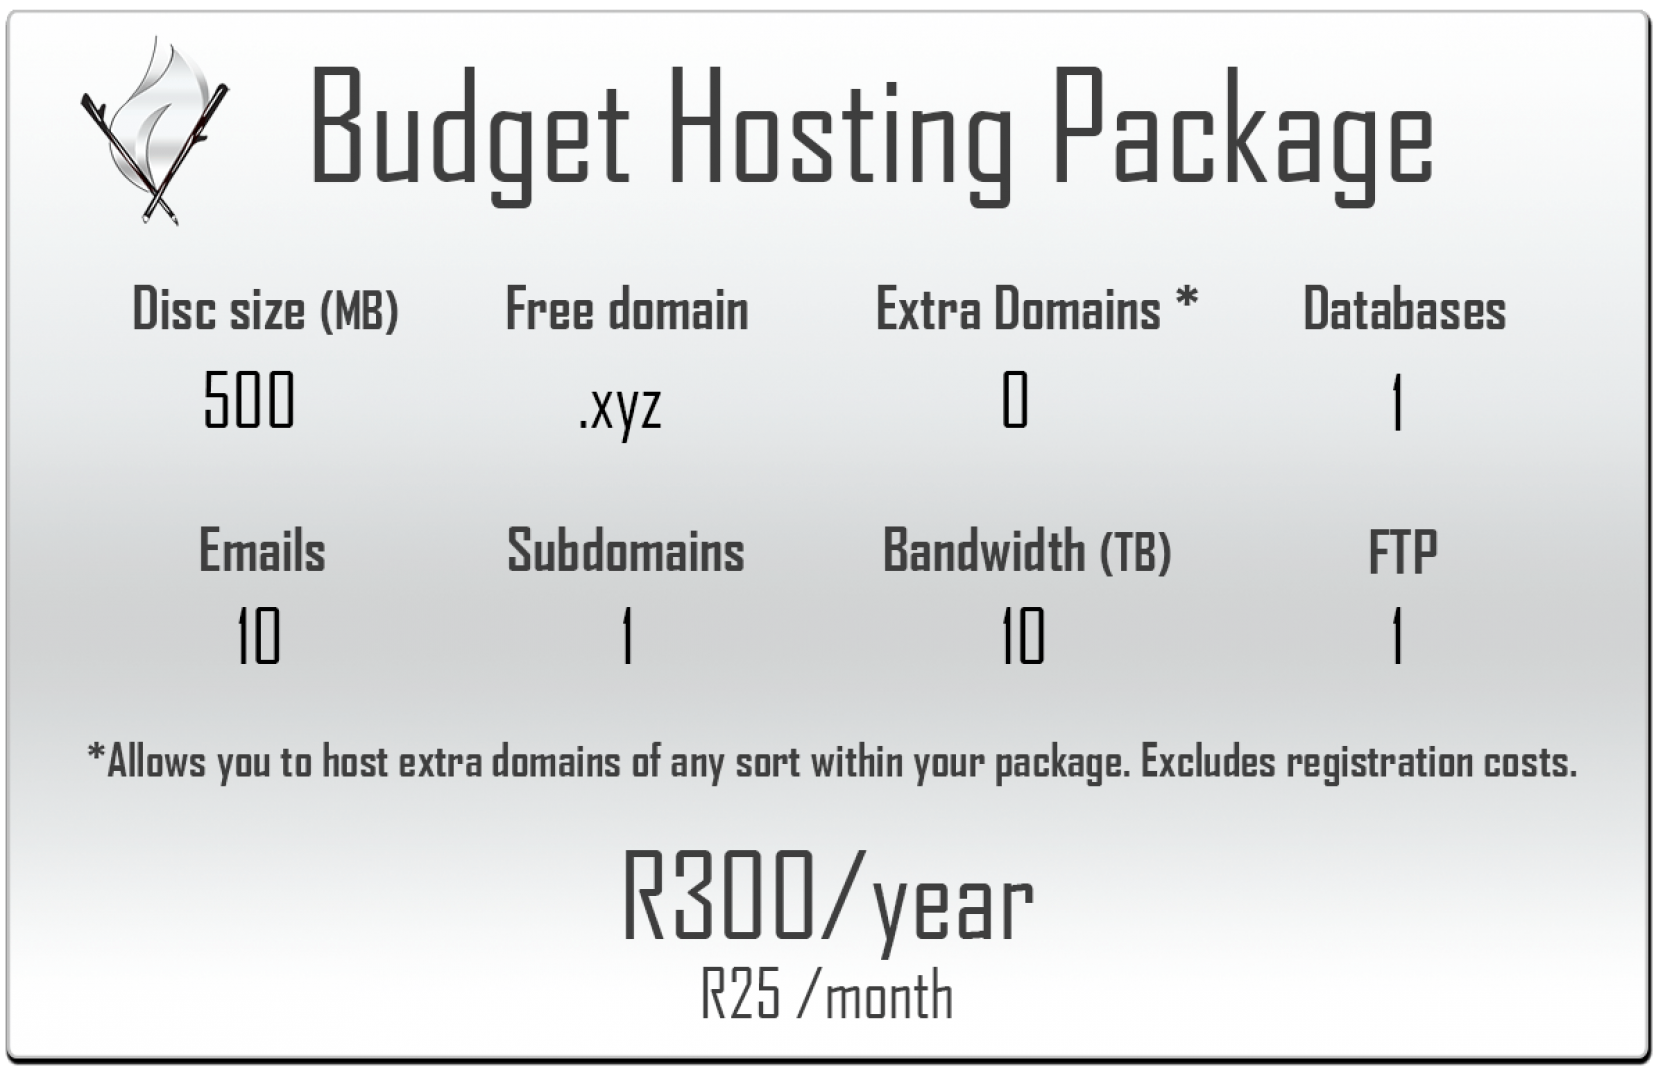 Budget Hosting Package